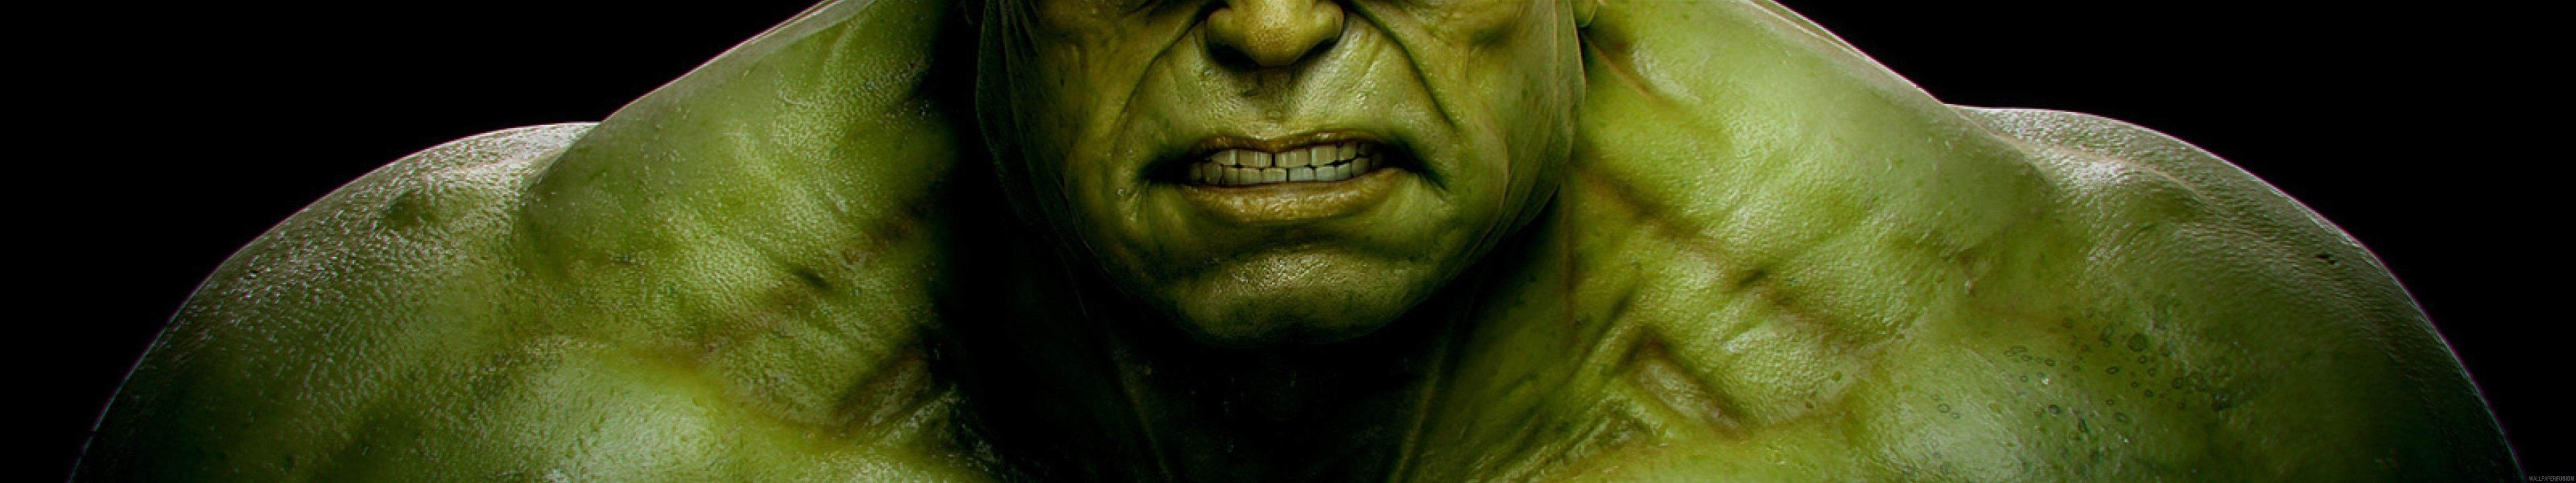 hulk wallpapers in hd